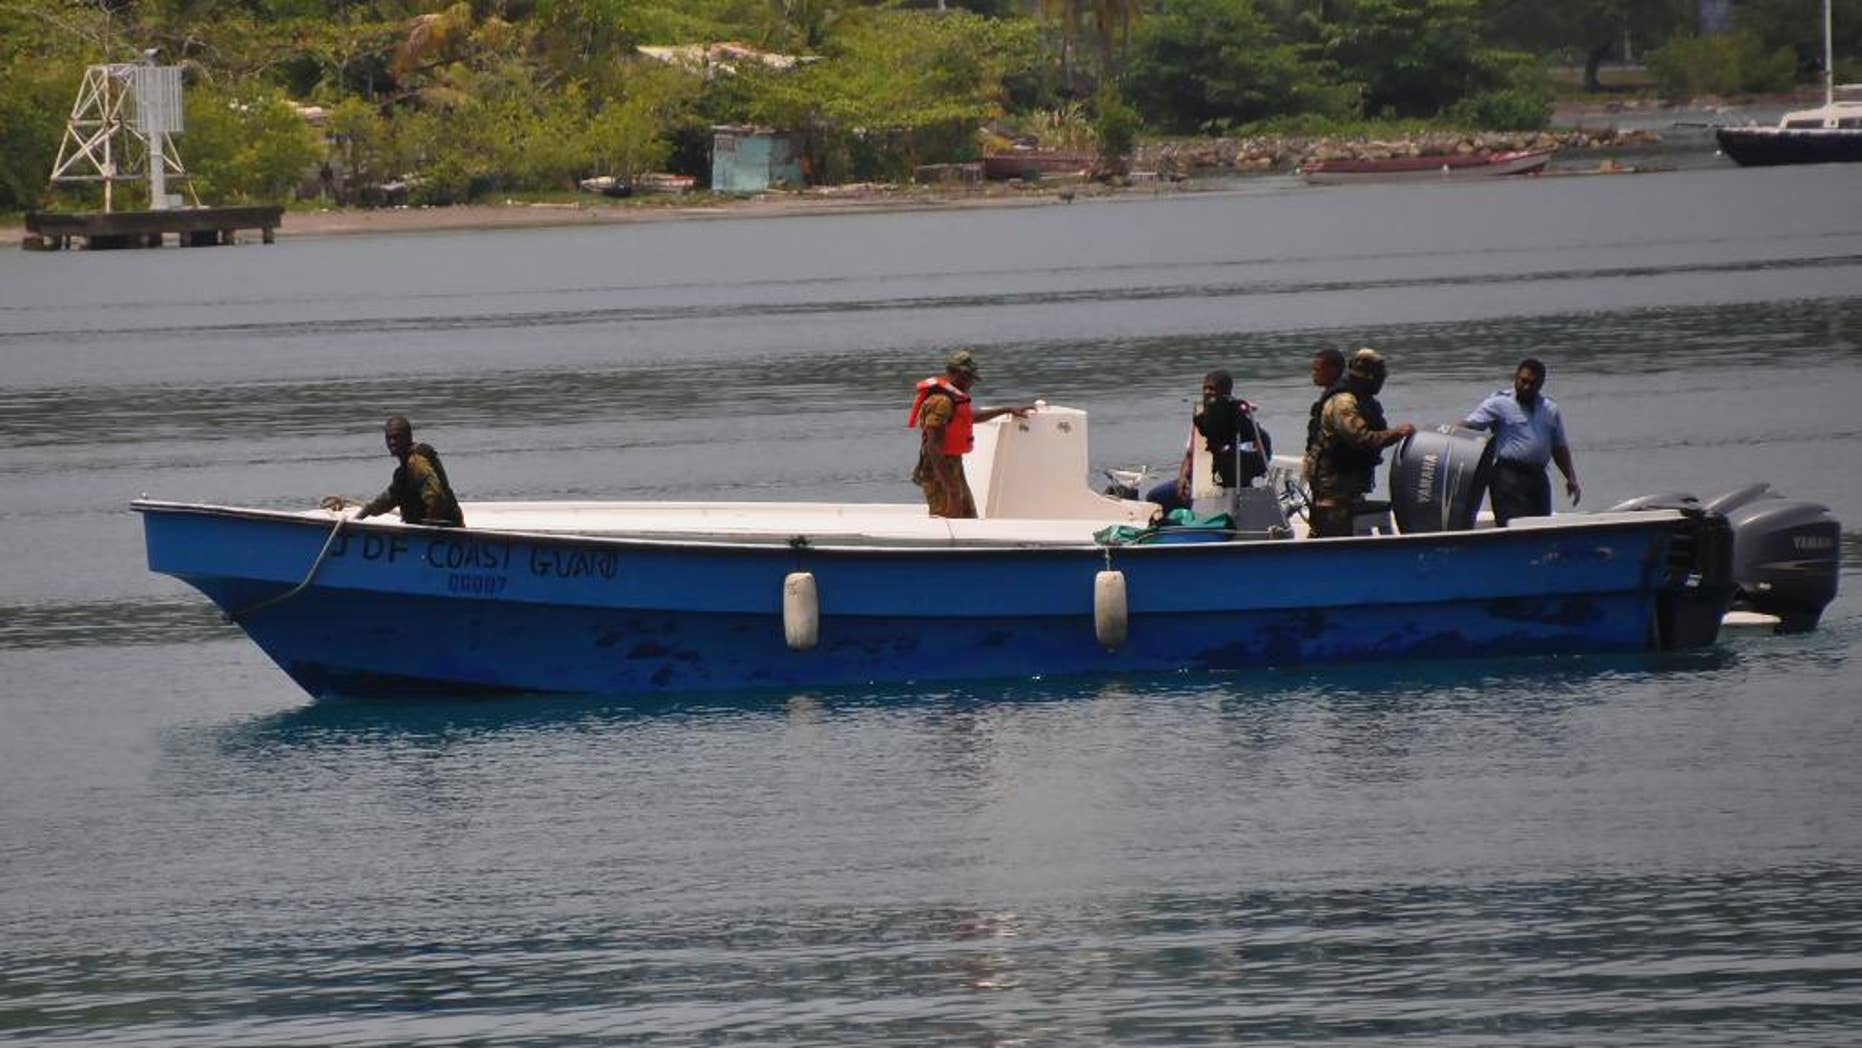 Jamaican Defence Force members return to Port Antonio Marina in Portland, Jamaica, Saturday, Sept. 6, 2014, after a fruitless search for a plane that crashed into the ocean a day earlier. Rescue crews searching off Jamaica's coast on Saturday said they could no longer see debris spotted earlier, stymieing efforts to solve the mystery surrounding a small plane carrying a prominent upstate New York couple that went on a ghostly 1,700-mile journey after the pilot was apparently incapacitated. Jamaican officials said that possible wreckage from the single-engine turboprop Socata TBM700 was sighted Friday evening by a military aircraft flying off the island's northeast coast, drifting roughly 24 miles off the coastal town of Port Antonio. (AP Photo/Everard Owen)